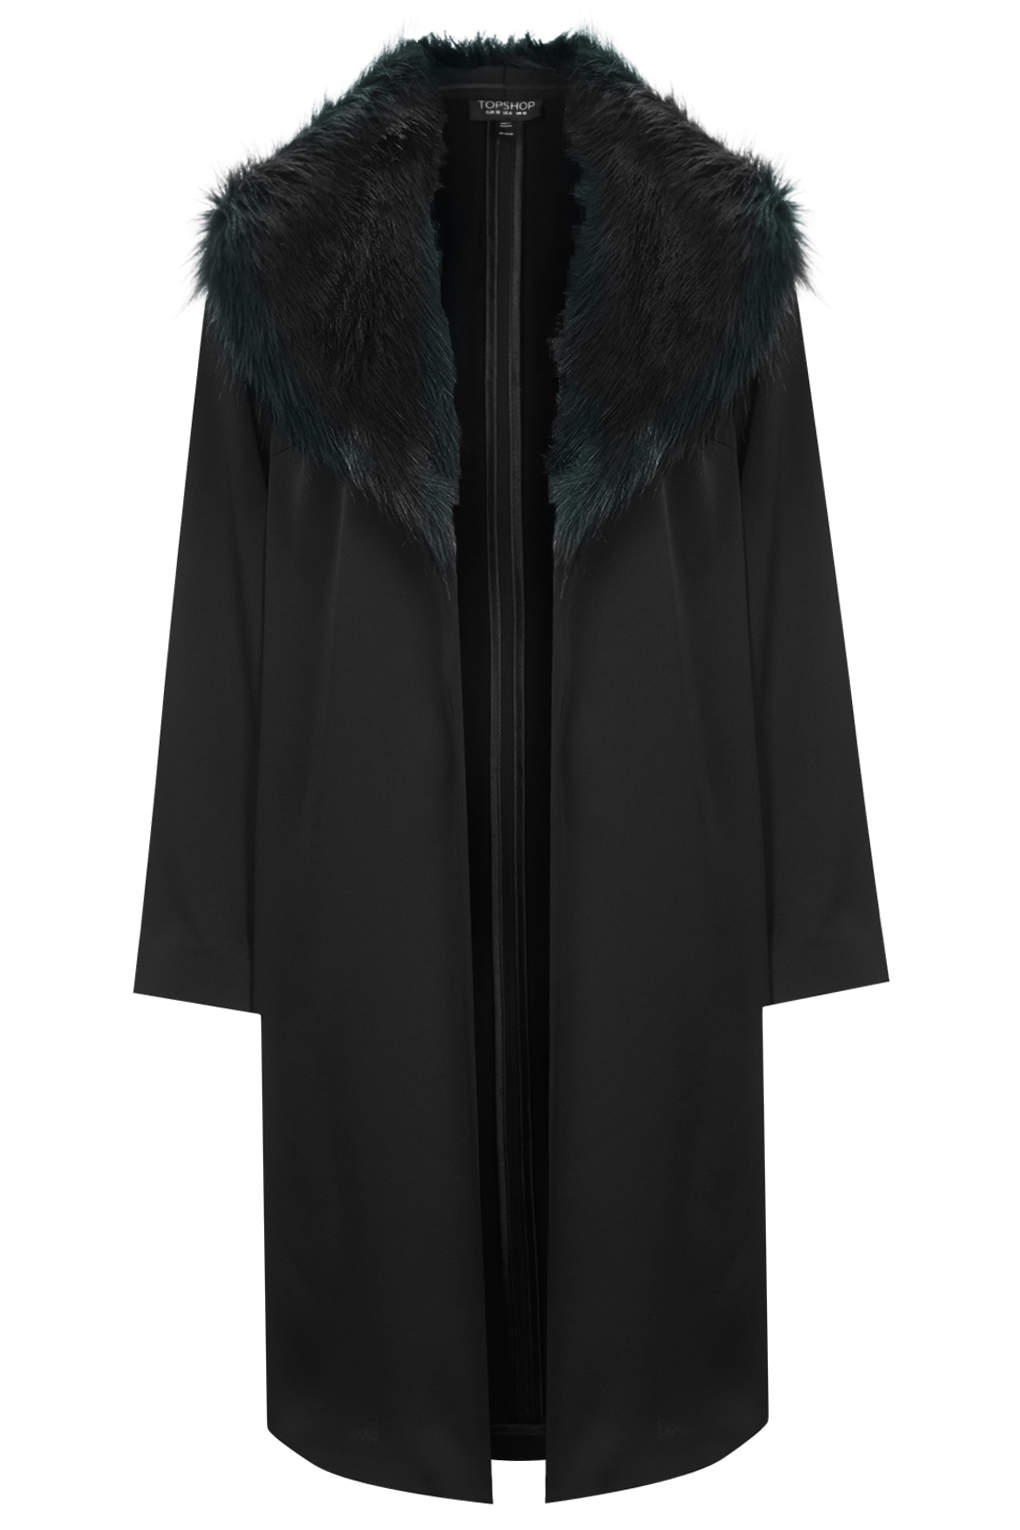 topshop faux fur collar coat in black lyst. Black Bedroom Furniture Sets. Home Design Ideas